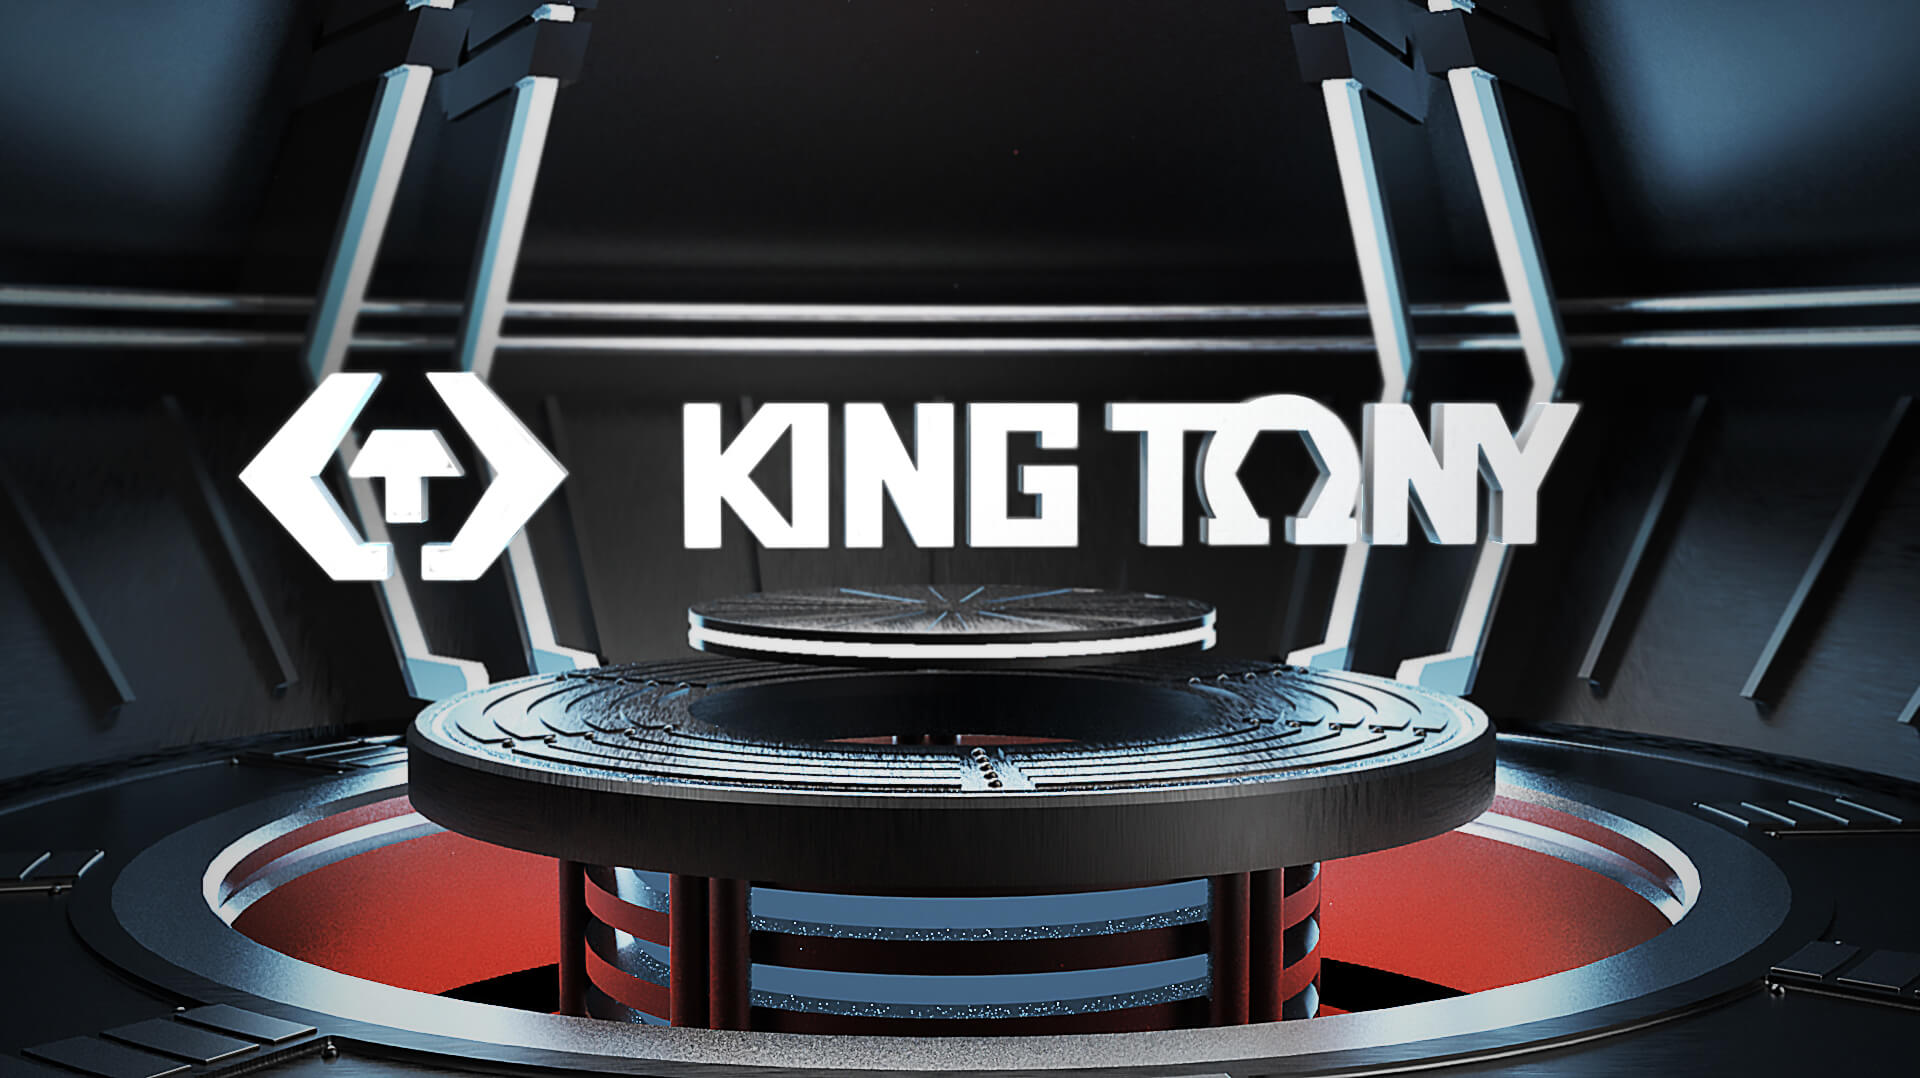 KING TONY-The legacy of professional tools brand